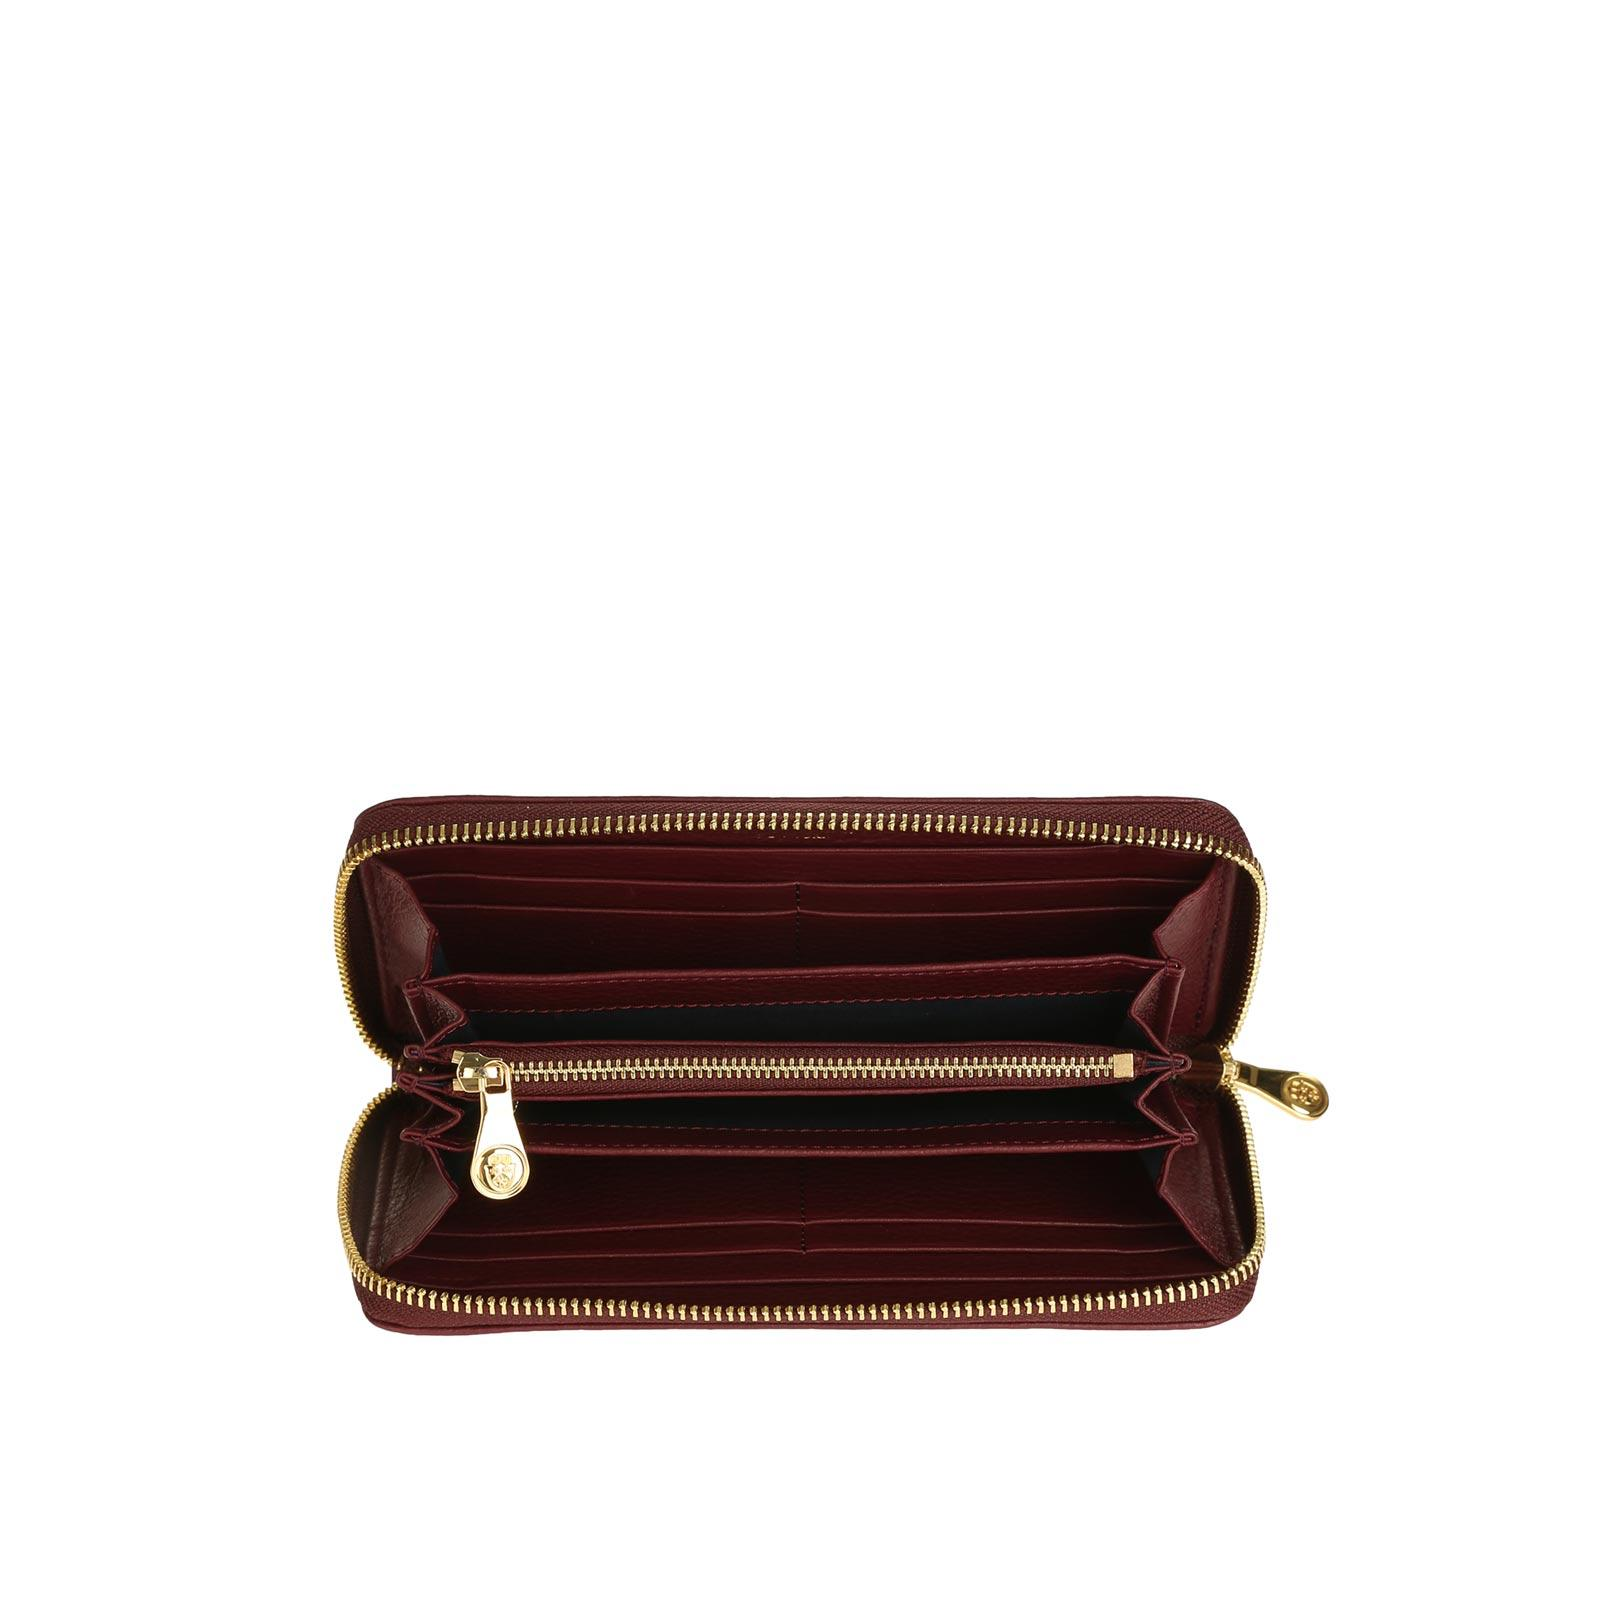 Tiffany Zipped Wallet BORDEAUX